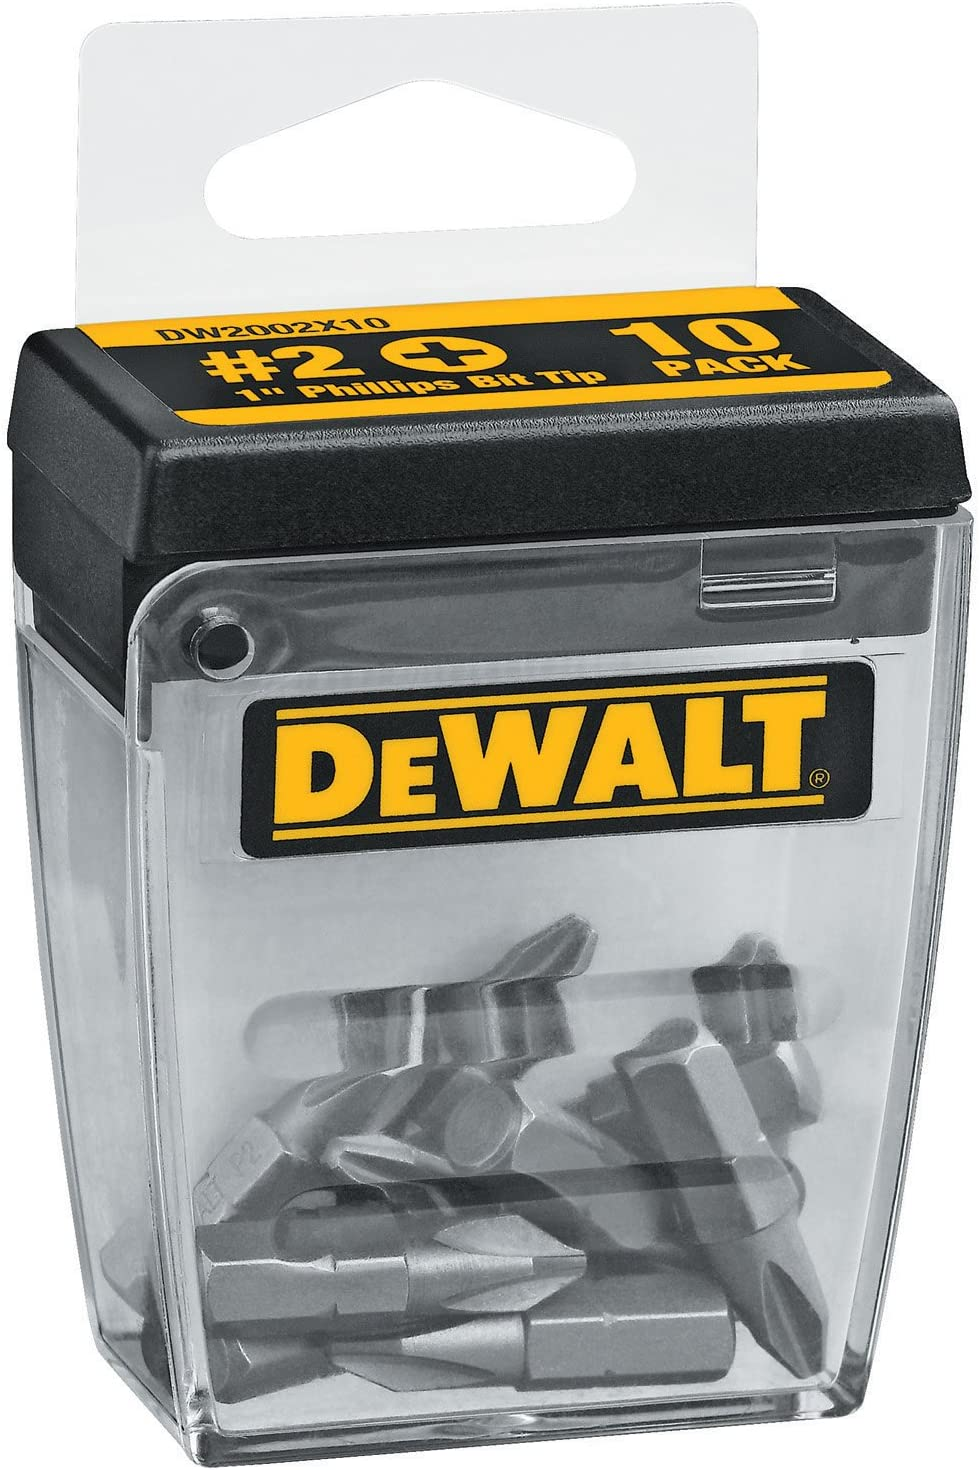 DEWALT DW2002X10 #2 Phillips 1-Inch Bit Tips with Bit Box (10-Pack)